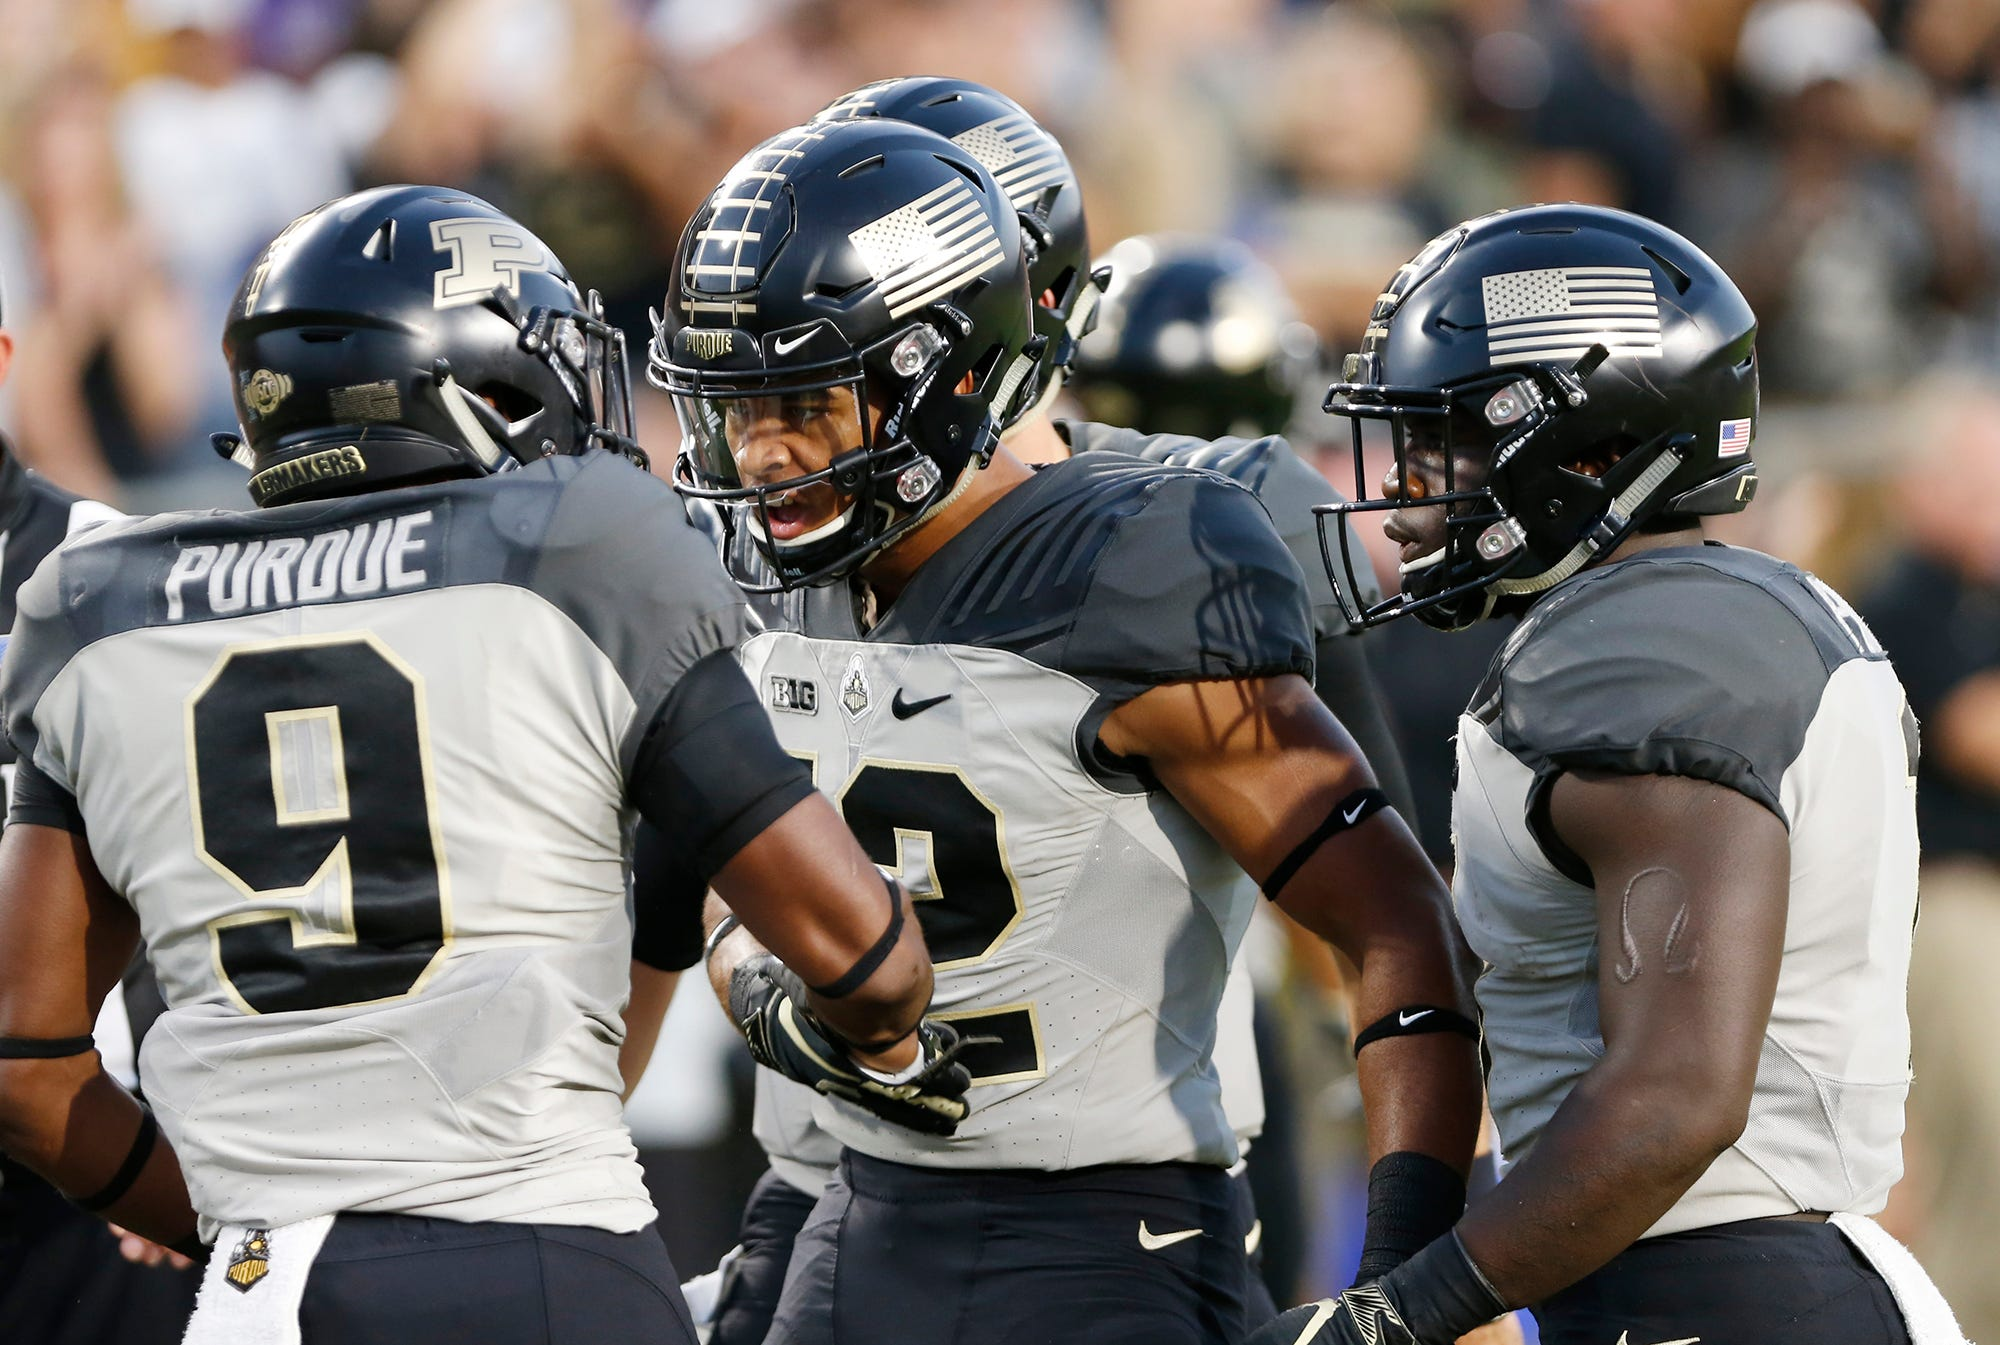 Terry Wright, left, of Purdue celebrates with teammates Jared Sparks and D. J. Knox after his touchdown reception in the first against Missouri Saturday, September 15, 2018, in West Lafayette.